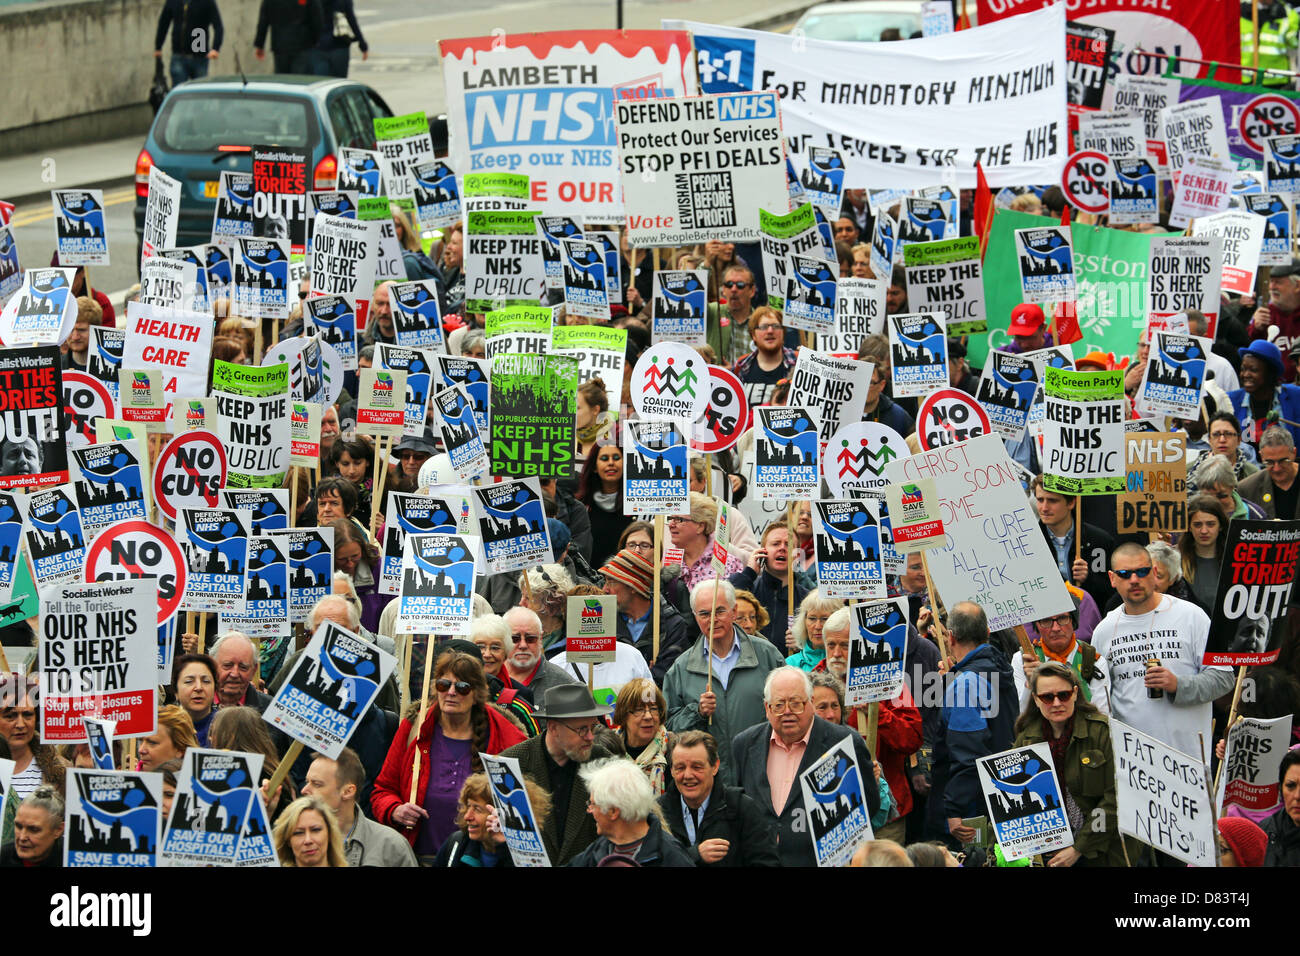 London, UK. 18th May 2013. Protestors on Waterloo Bridge supporting the National Health Service against cuts at - Stock Image